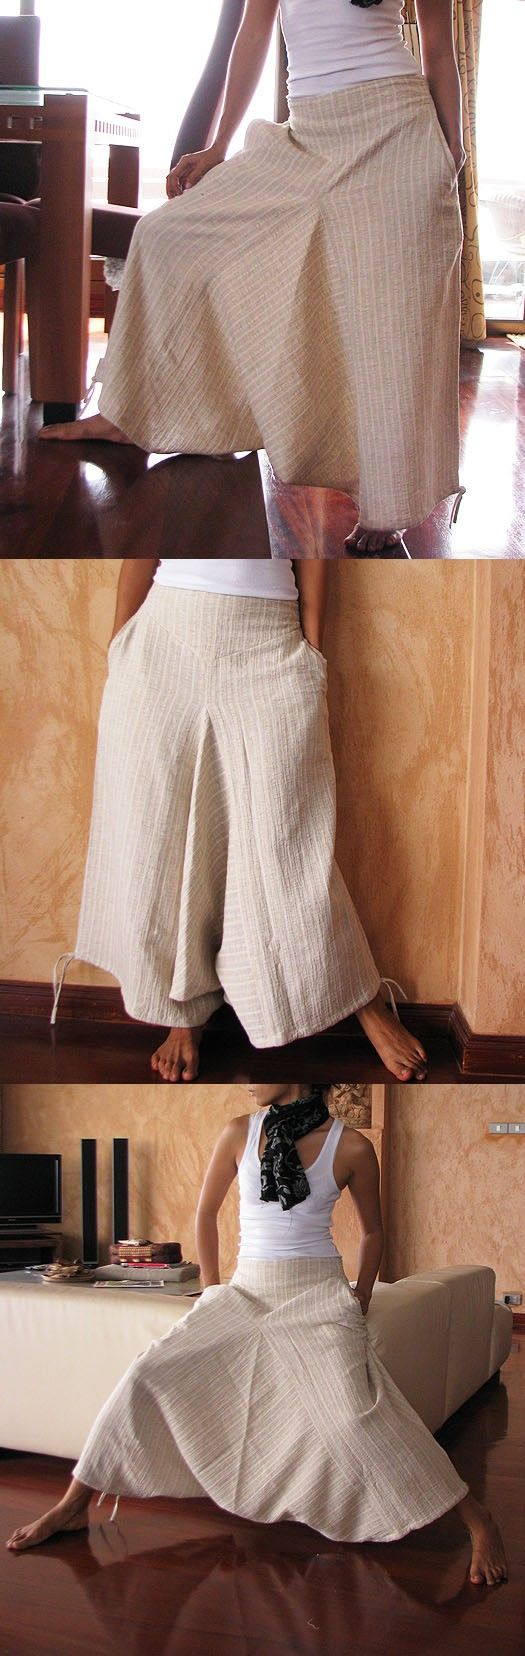 Cocoricoo on Etsy. I love these pants that look like a skirt, it would be great in the New Mexico wind!